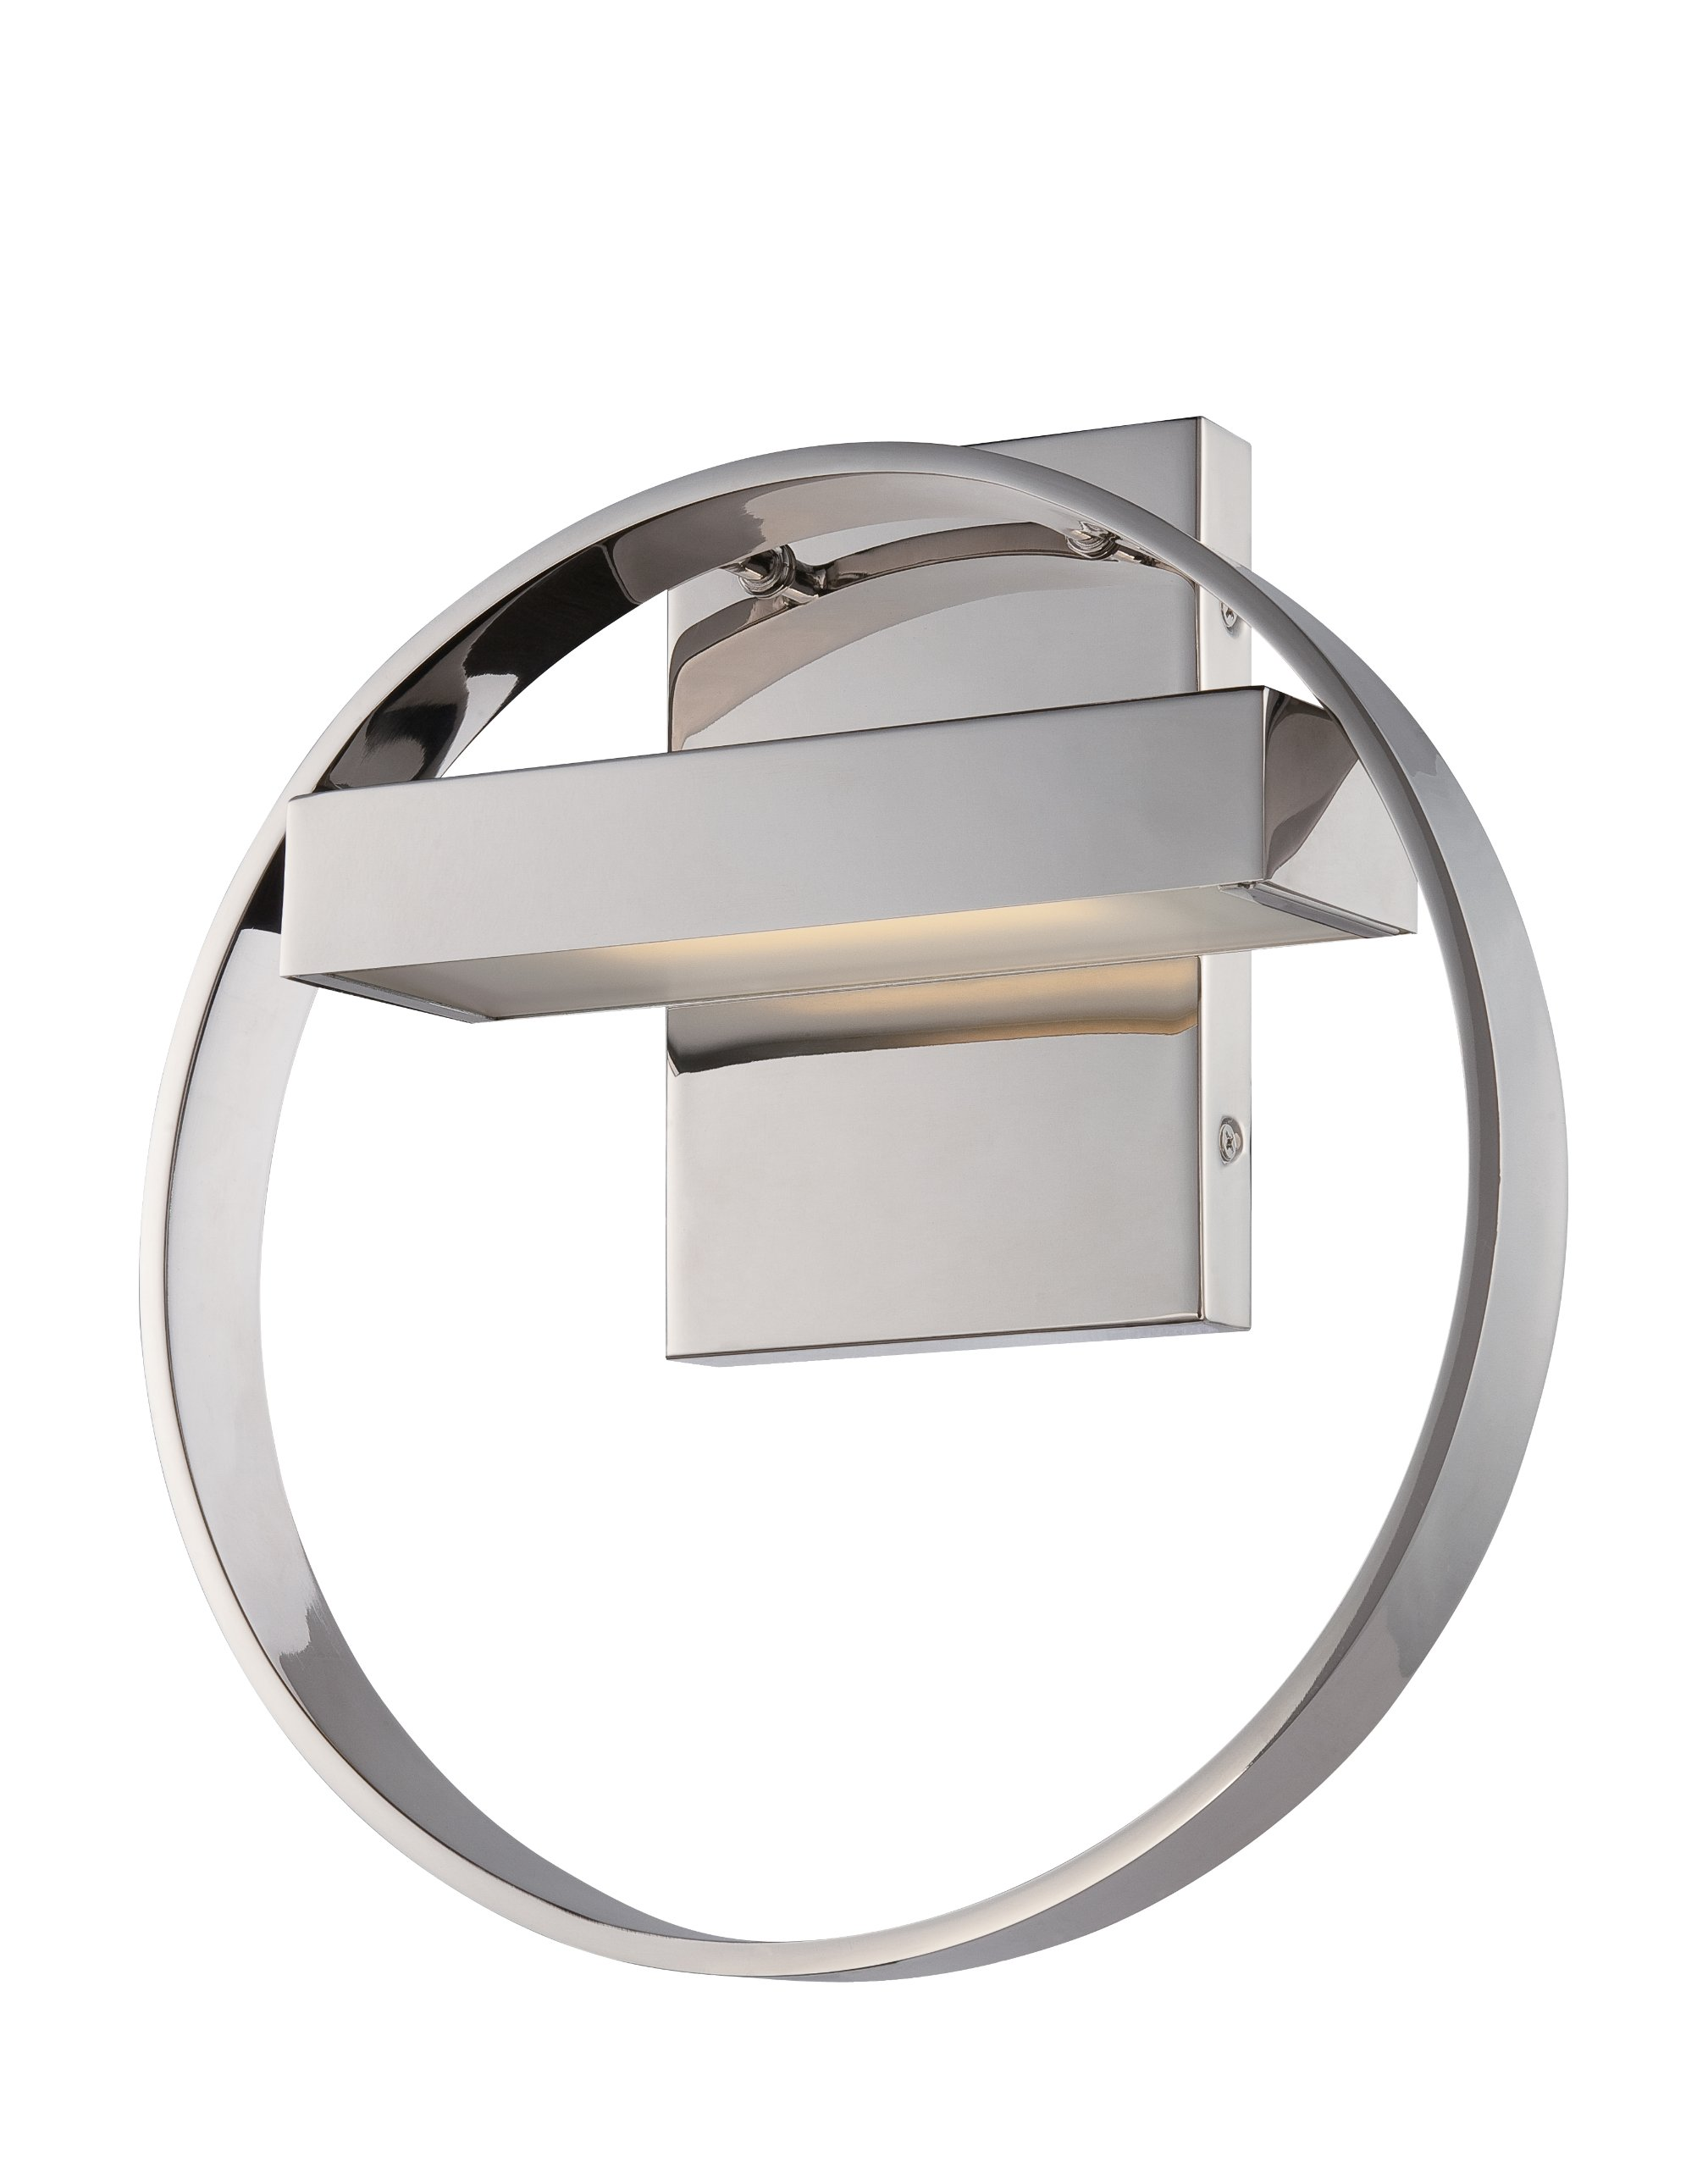 Nuvo Lighting 62/181 Cirque LED One Light Wall Sconce 4.8 Watt 285 Lumens Soft White 2700K KolourOne LED Technology Frosted Glass Polished Nickel Fixture